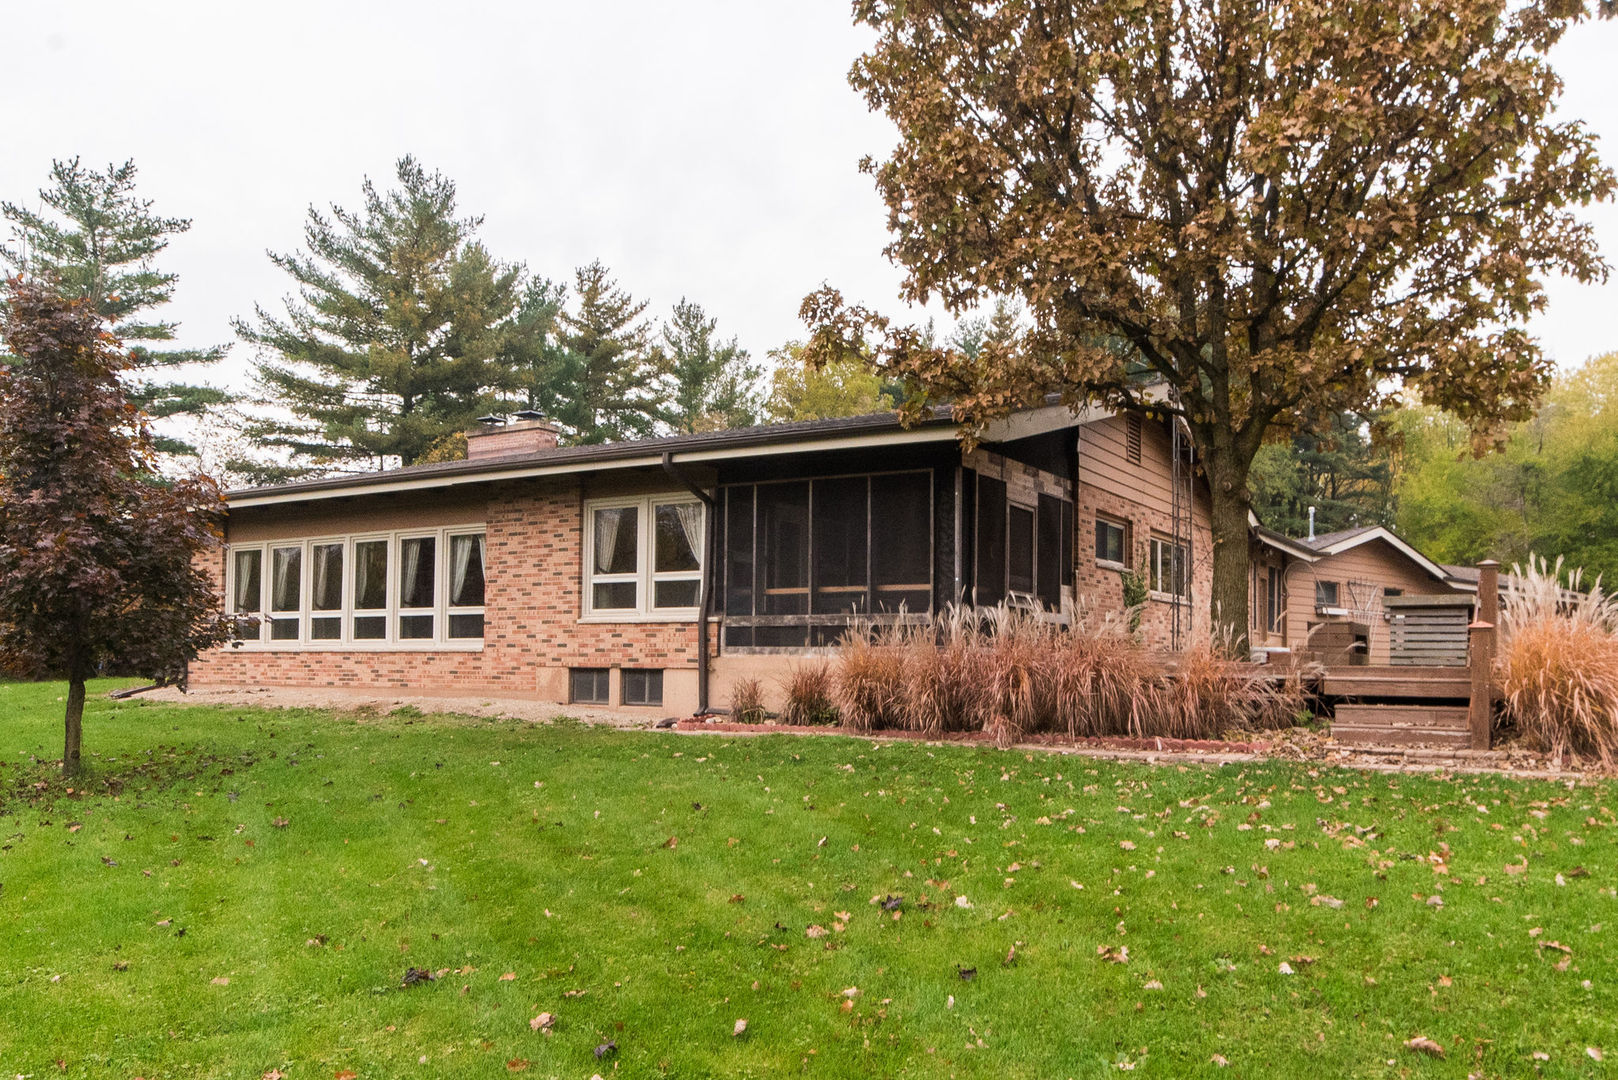 Photo for 24072 N 1st Street, Sycamore, IL 60178 (MLS # 10609935)